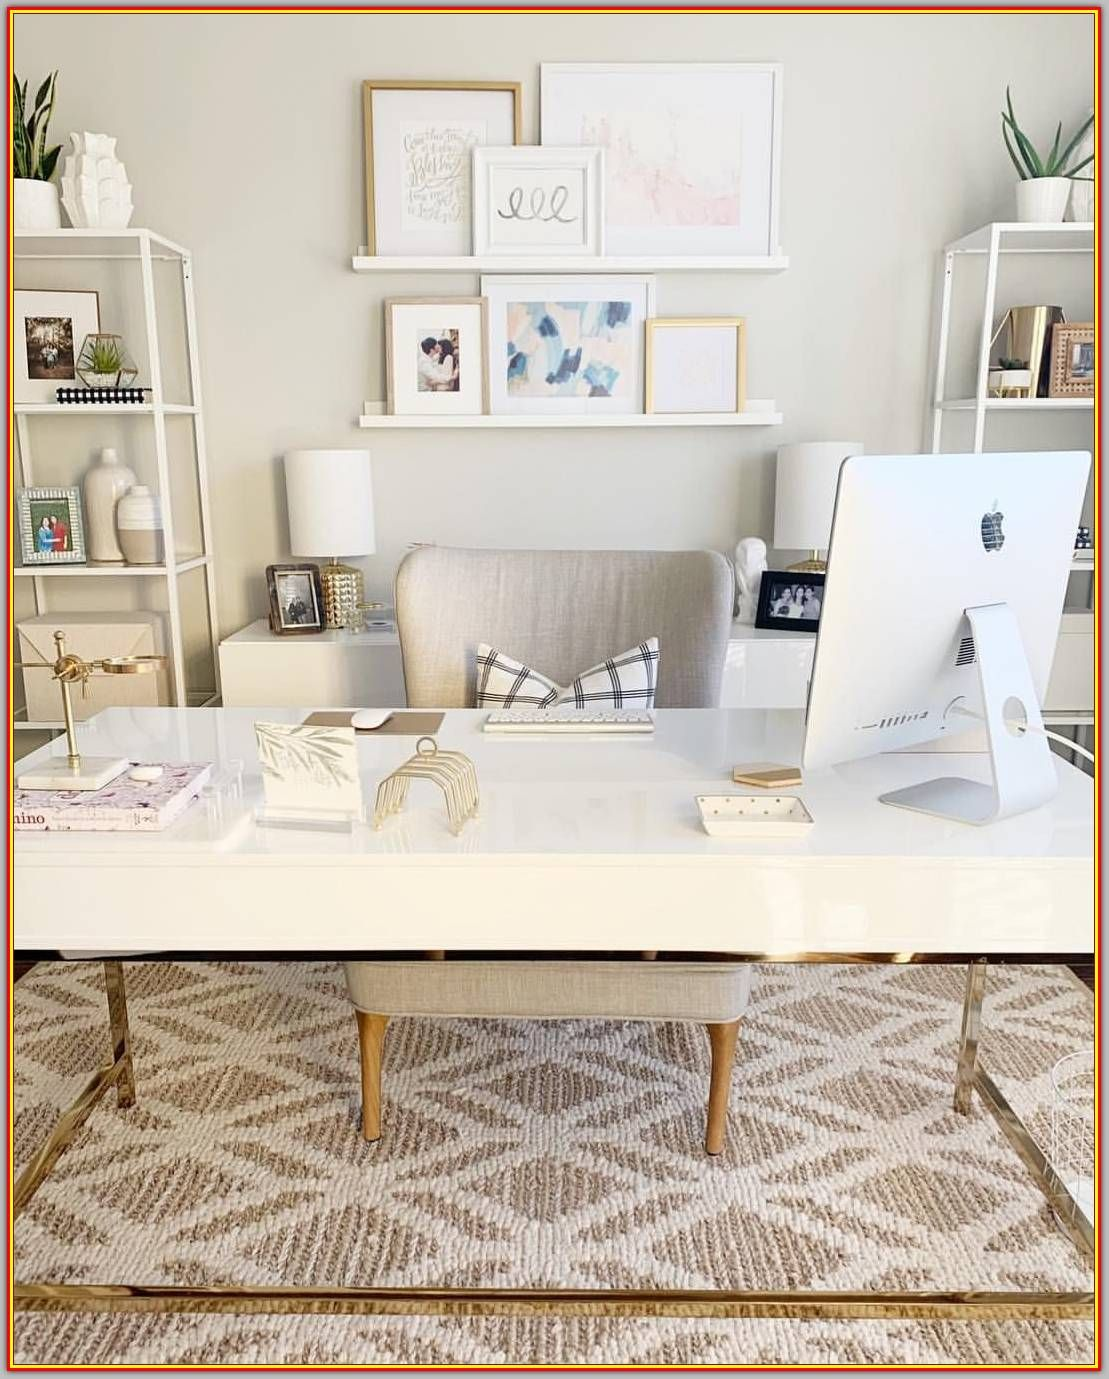 Furnish Your Home Office Decor With These Tips And Tricks Modern Interior Design Cozy Home Office Home Office Design Home Office Space